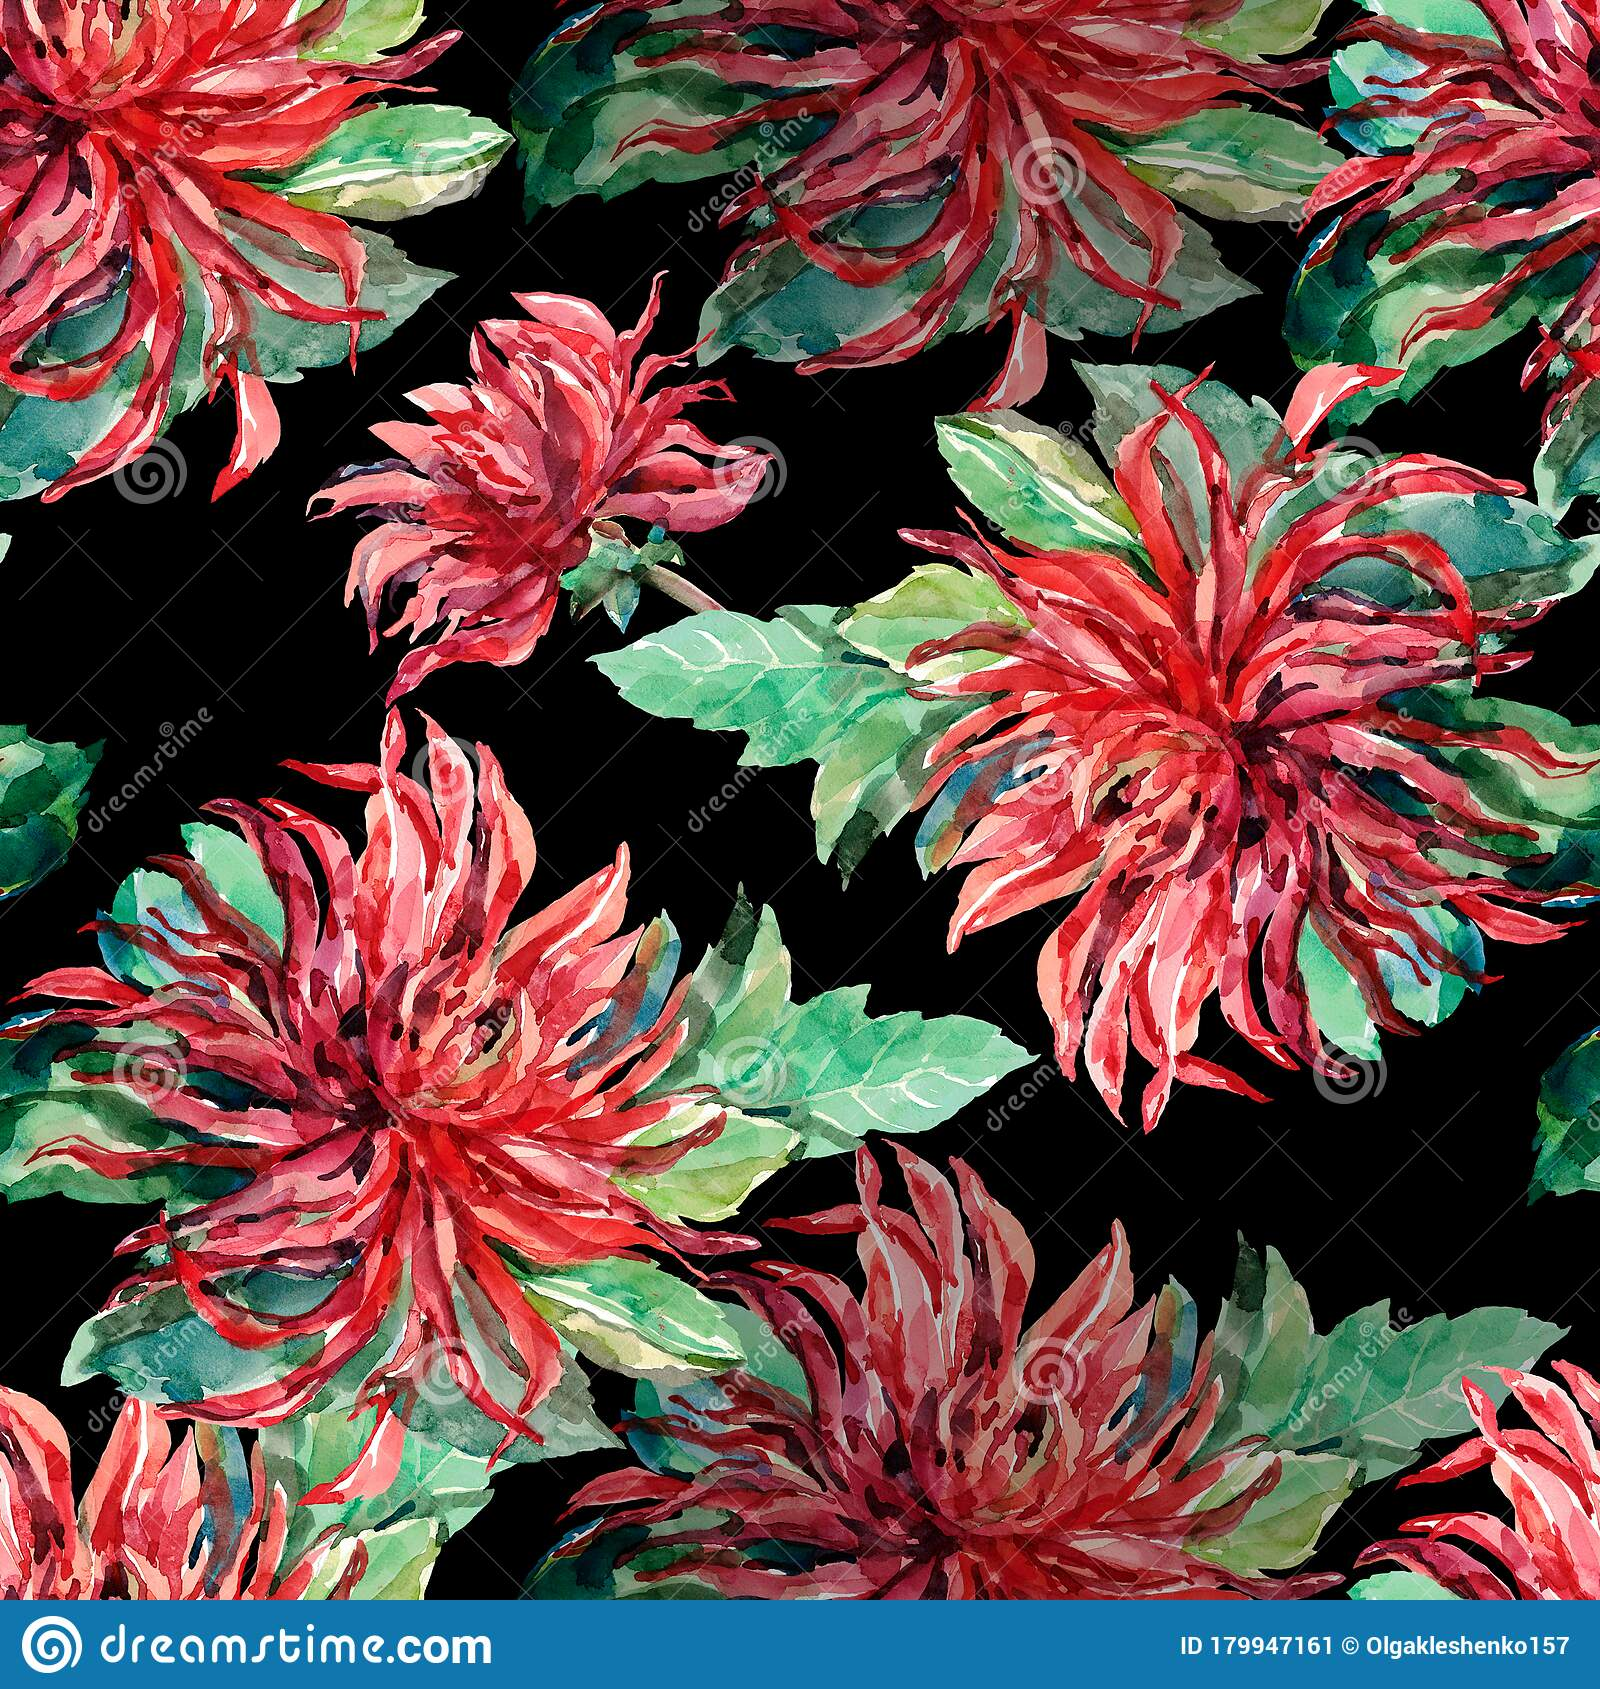 Dahlia Flowers Painting In Watercolor Seamless Pattern For Decor Stock Illustration Illustration Of Meadow Creative 179947161